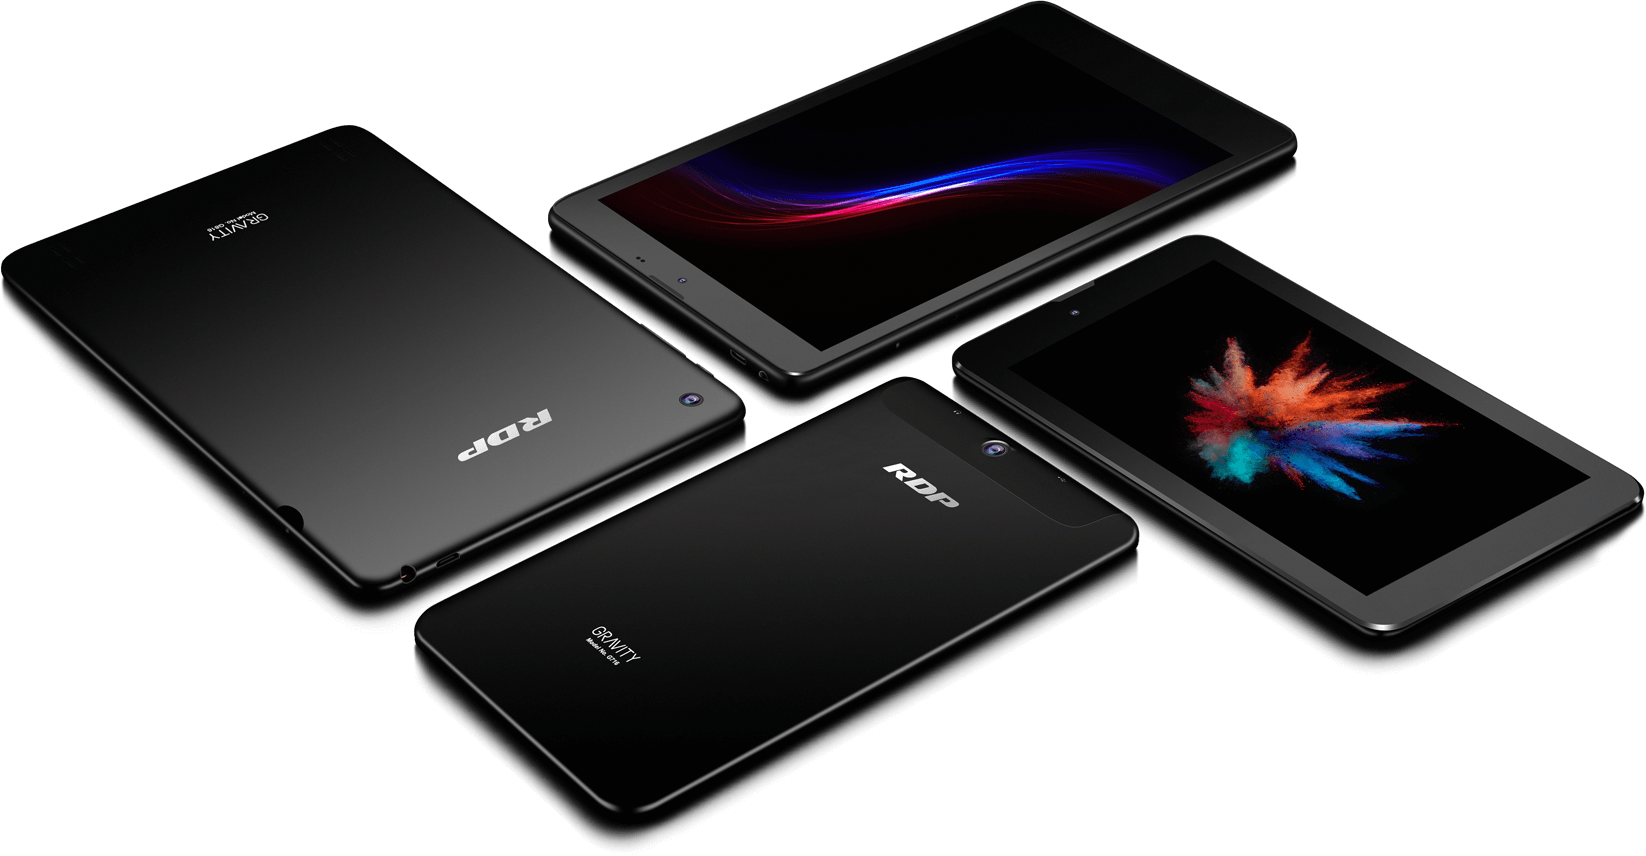 7, 8, 10 inch Tablets PC's